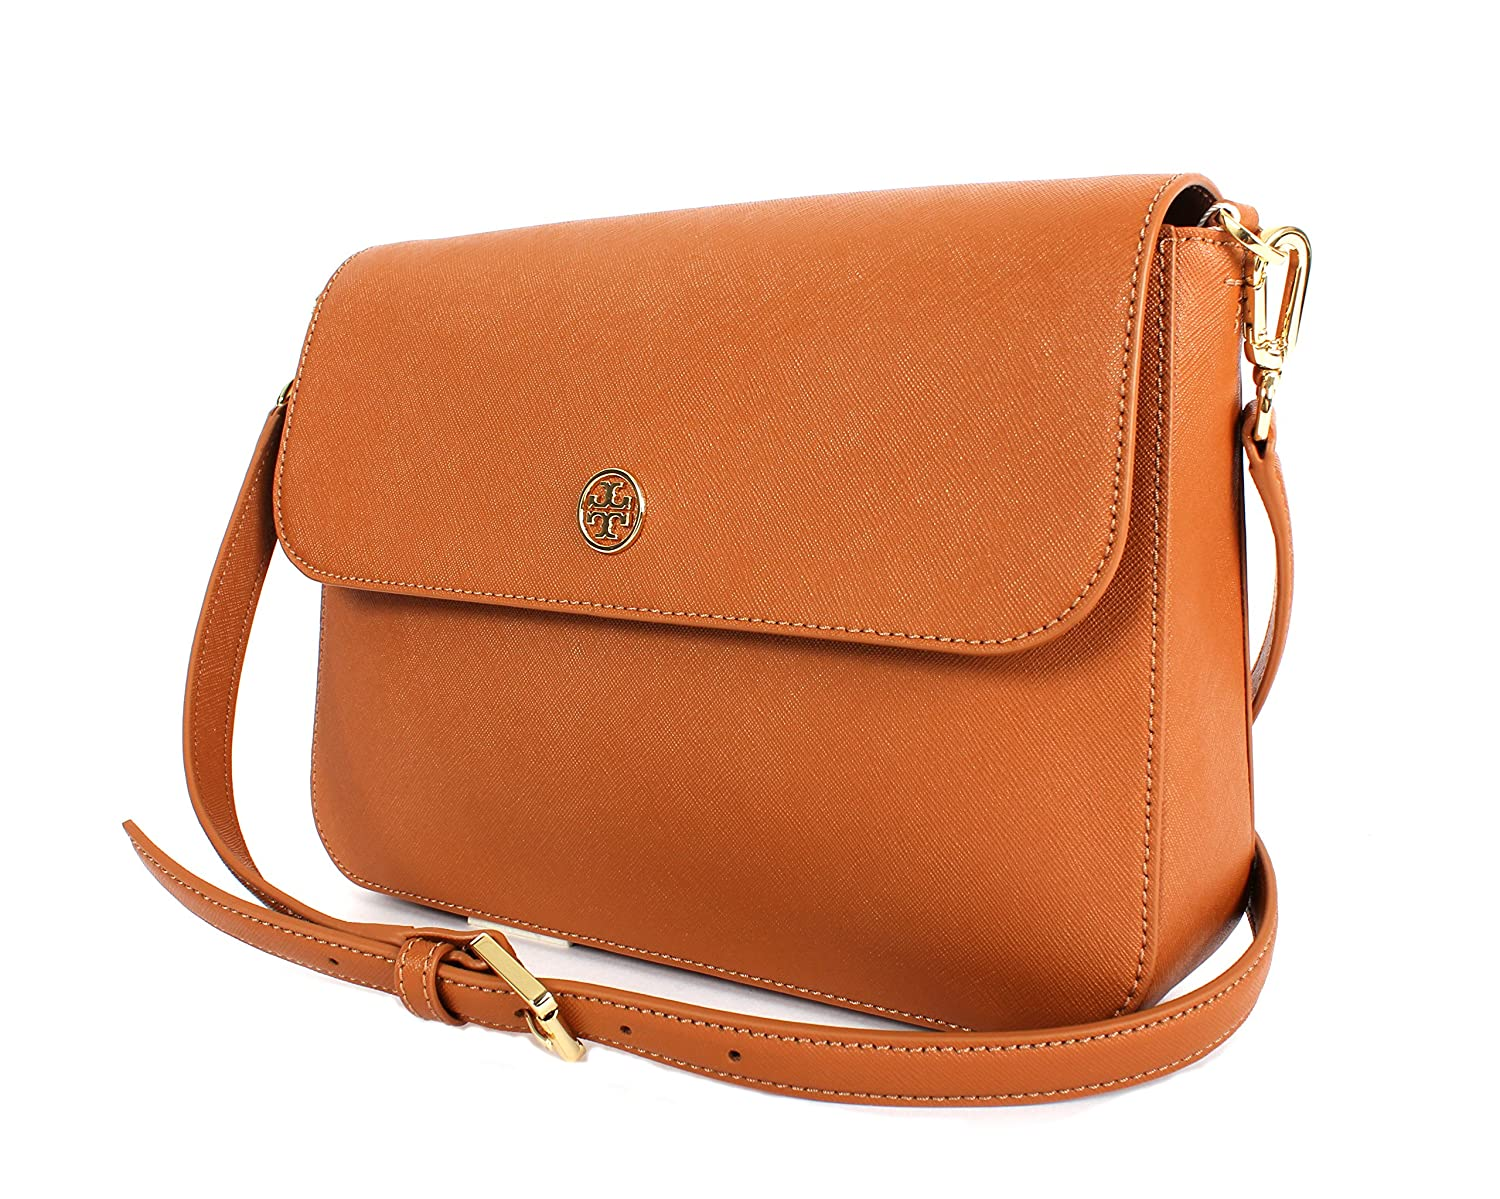 5bbd3e80c60f Amazon.com  Tory Burch Robinson Crossbody Bag Style NO. 36880 Luggage  Shoes